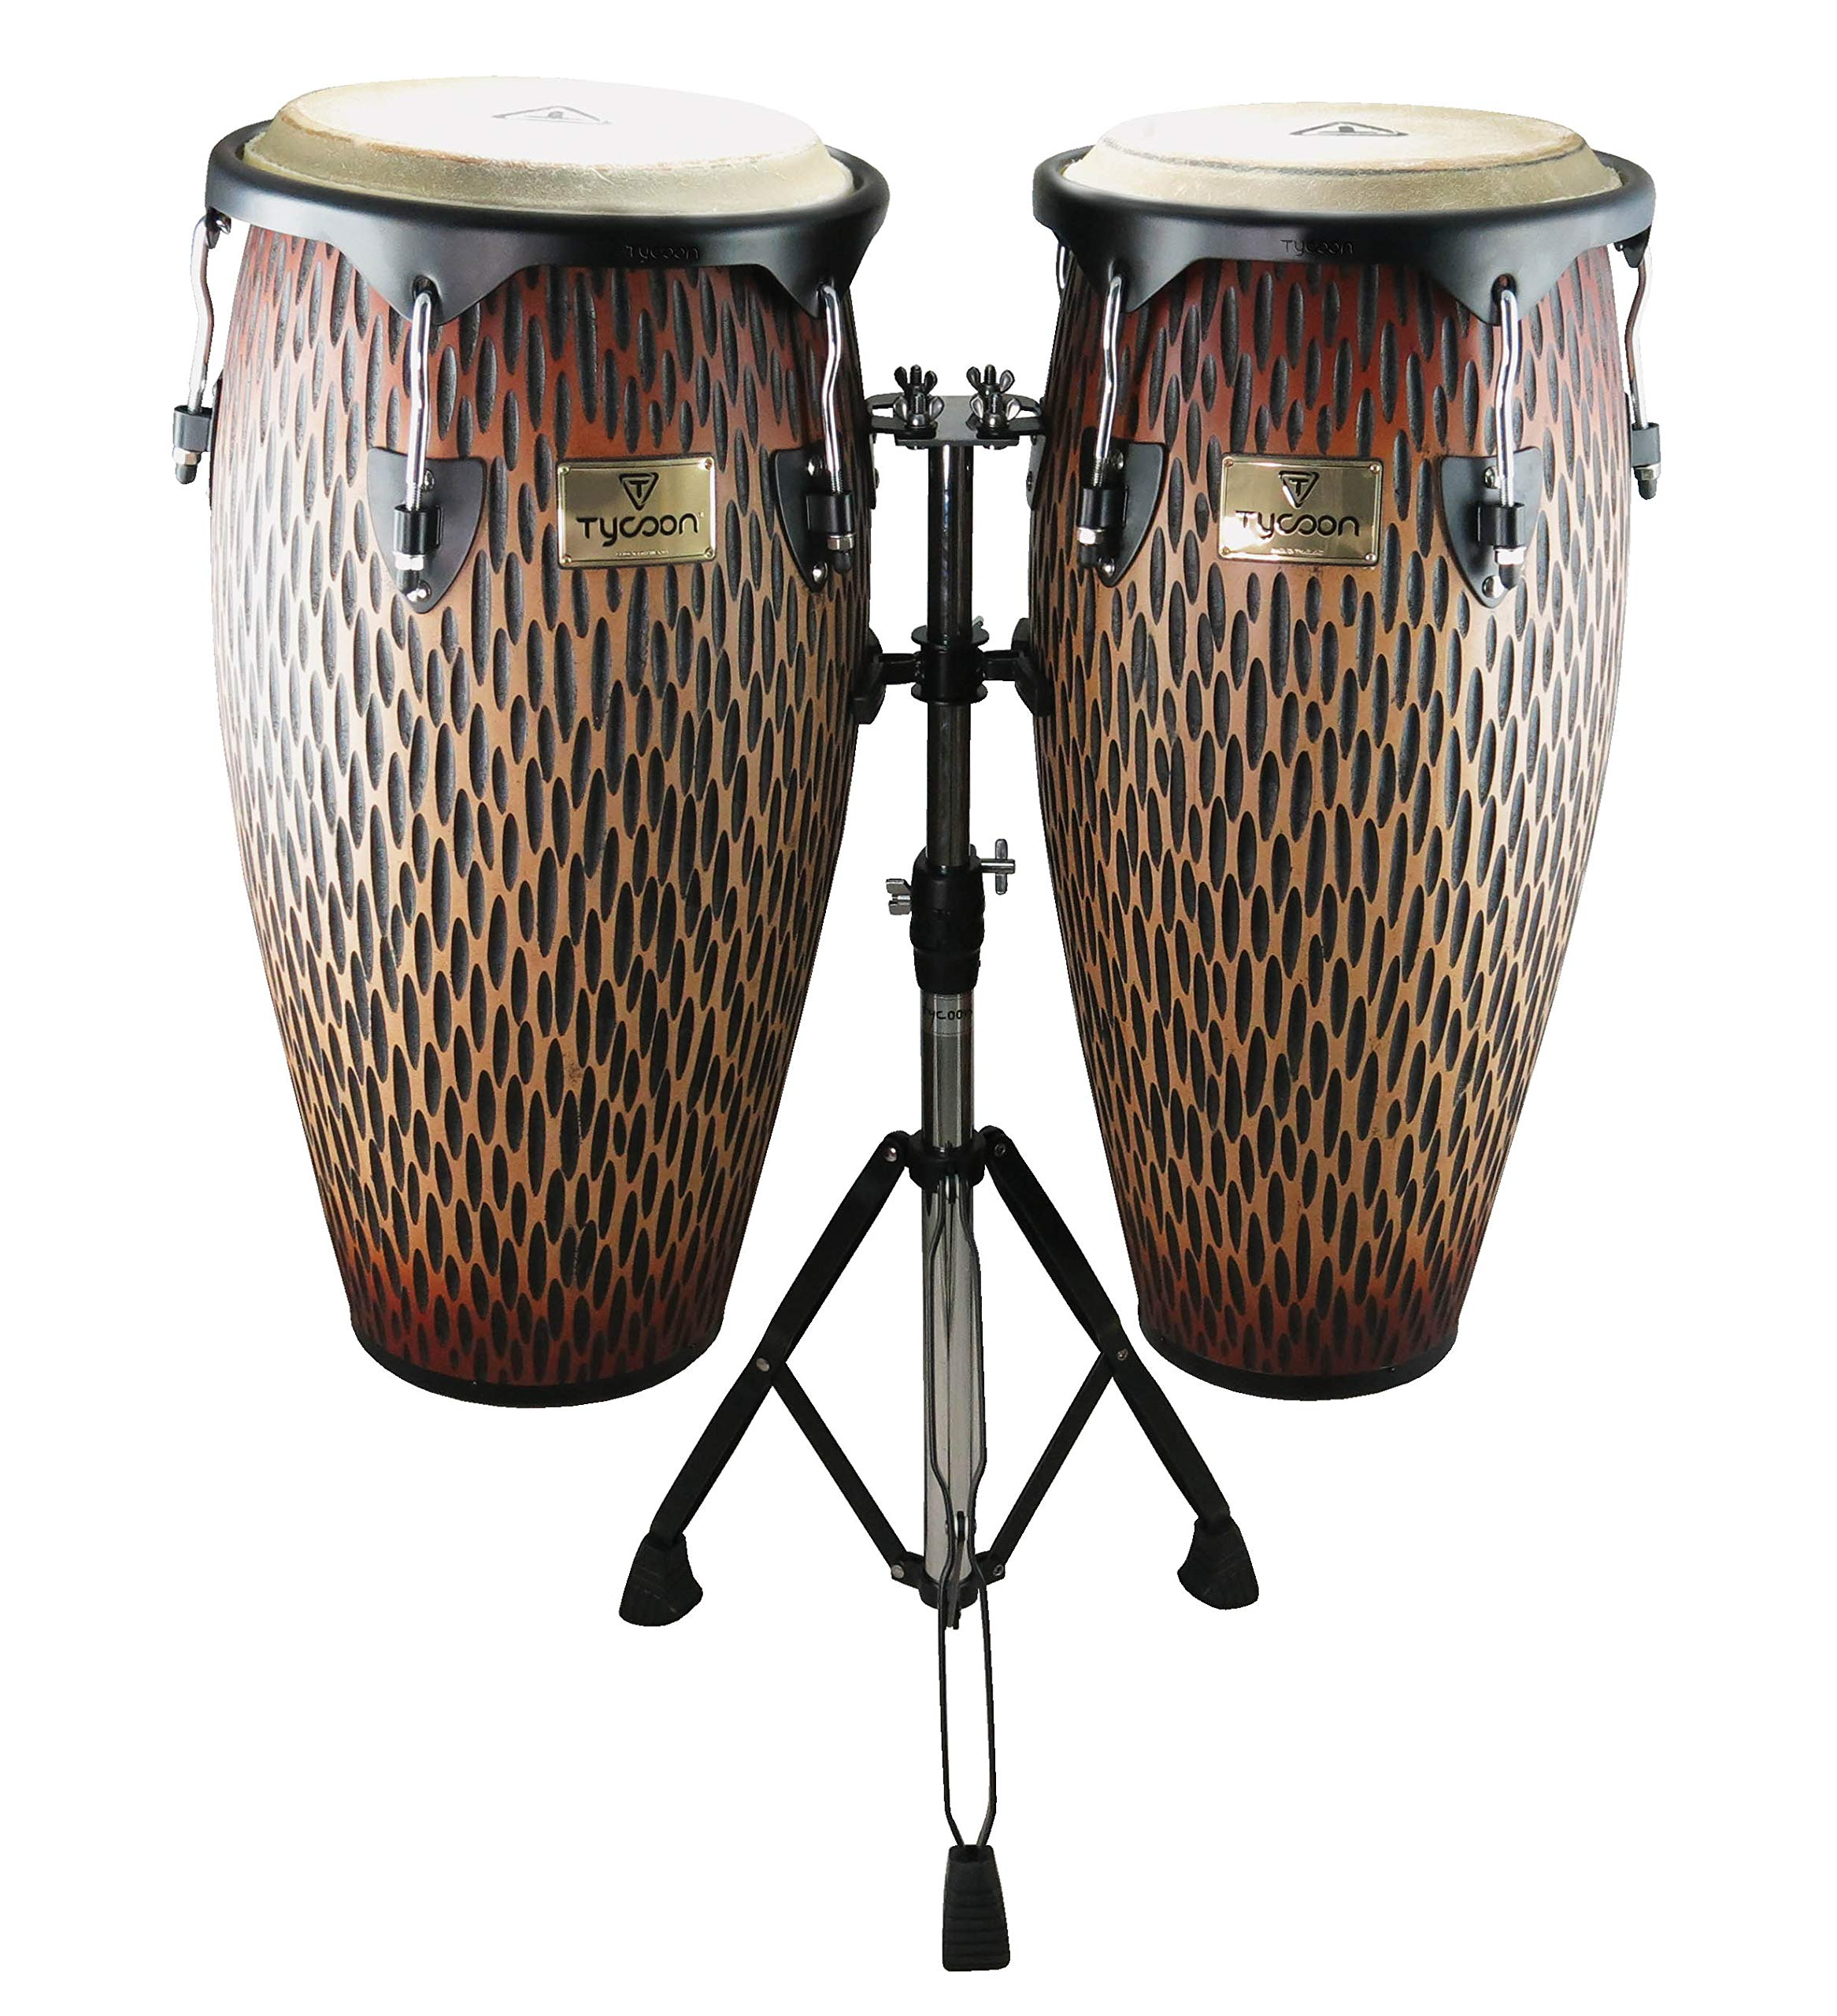 Tycoon Percussion STCS-B CO/D 10-Inch Requinto and 11-Inch Quinto Conga Drum - Chiseled Orange by Tycoon Percussion